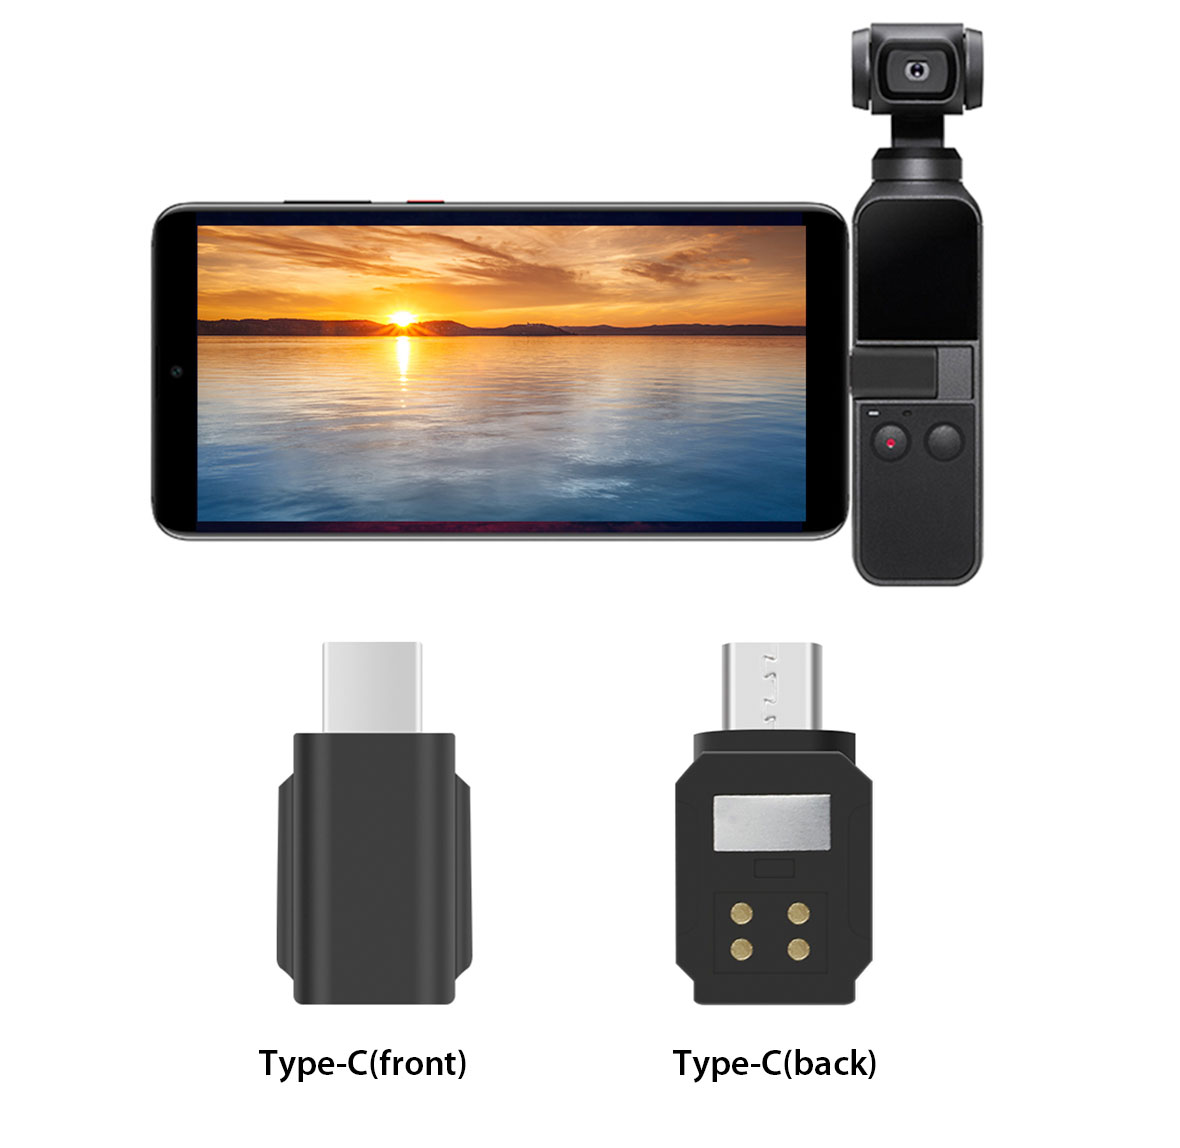 Phone-Adapter-Converter-for-DJI-OSMO-Pocket-Android-Miro-USB-Type-C-Connector thumbnail 12